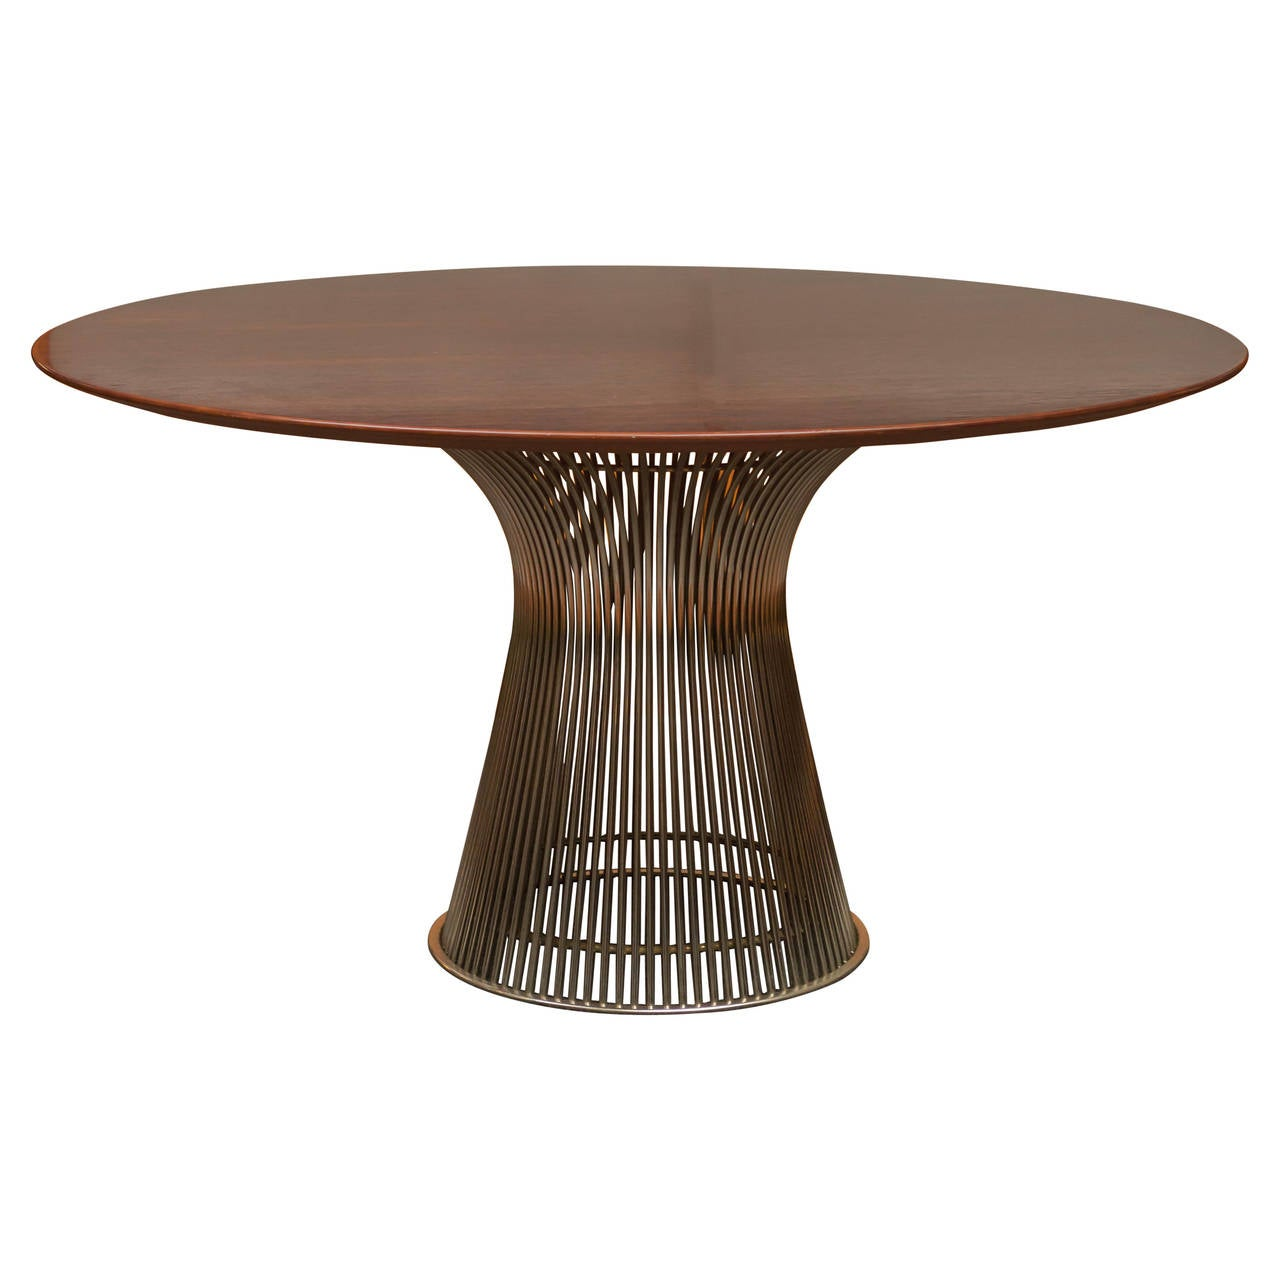 Warren platner for knoll rosewood table at 1stdibs for Table warren platner